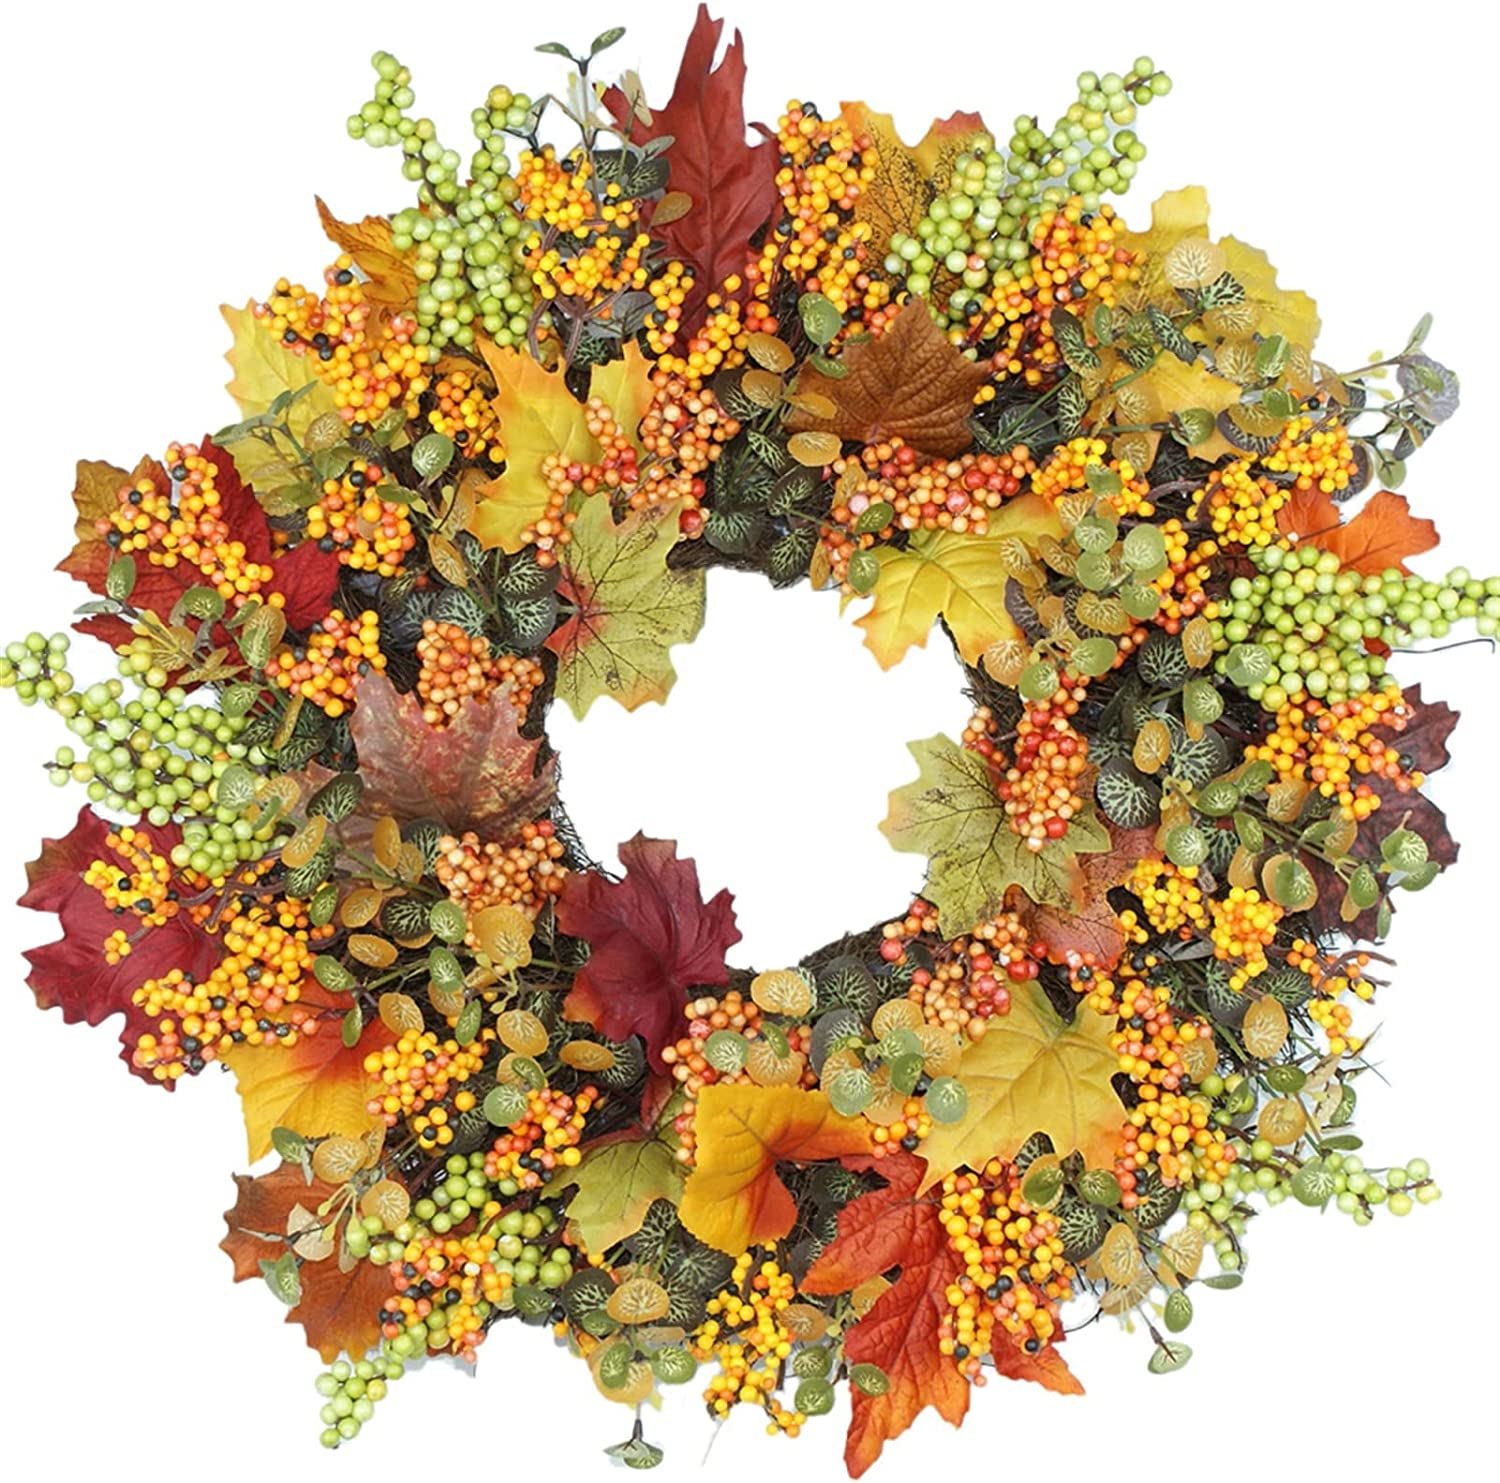 YINLAN Front Door Wreath Simulation Au Flowers Ranking Fixed price for sale TOP8 Leaf Maple